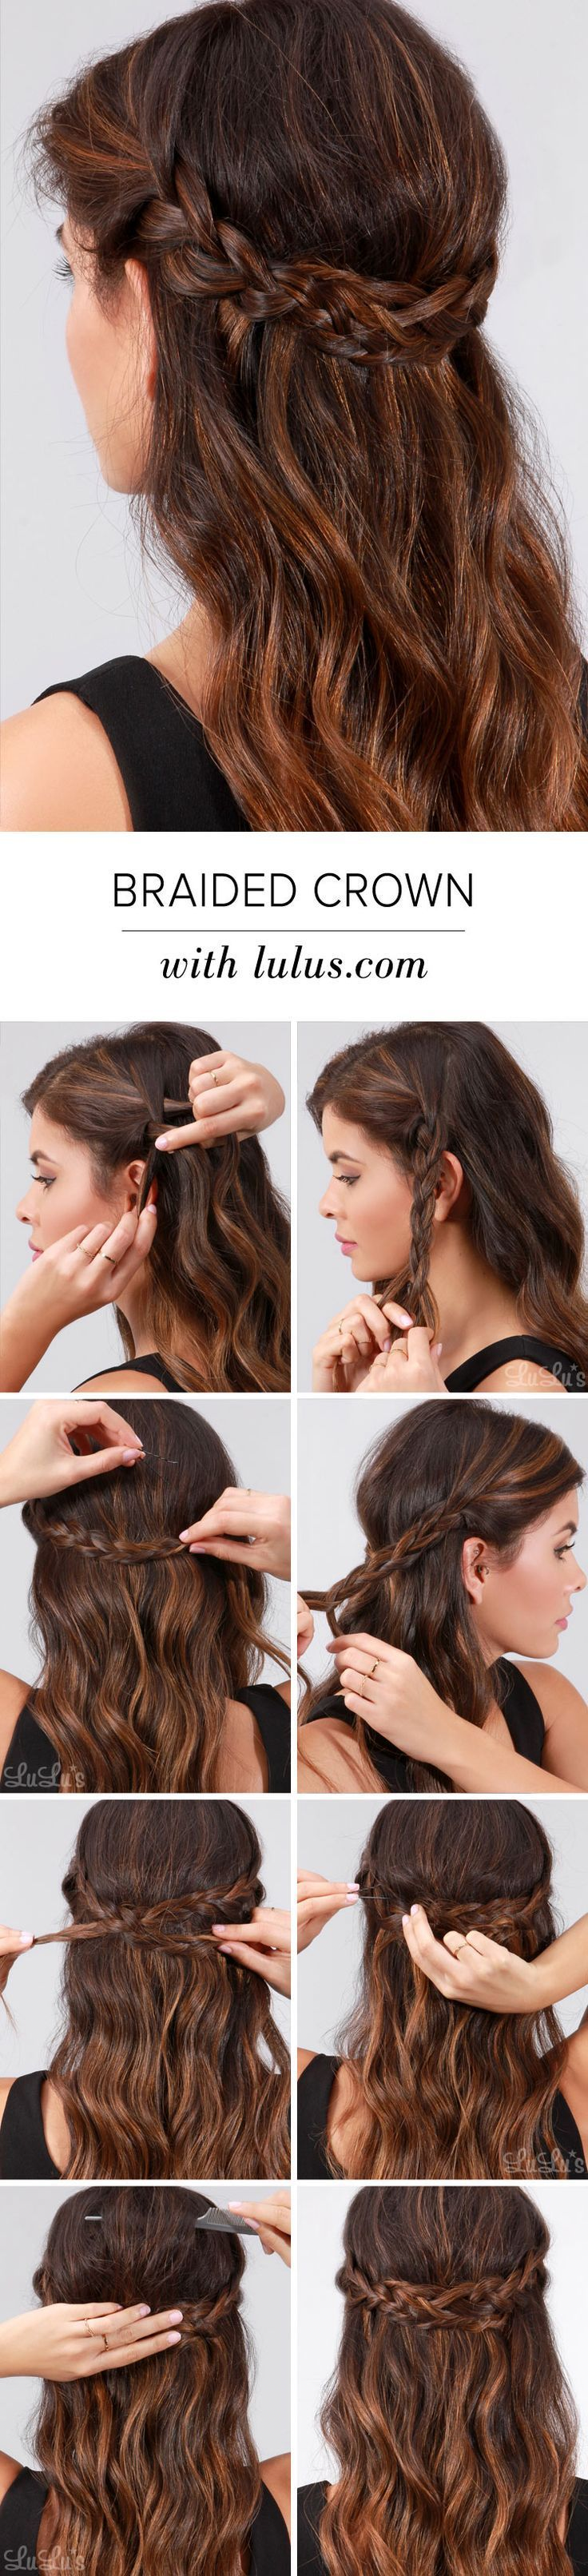 Best 116 Hairstyles images on Pinterest